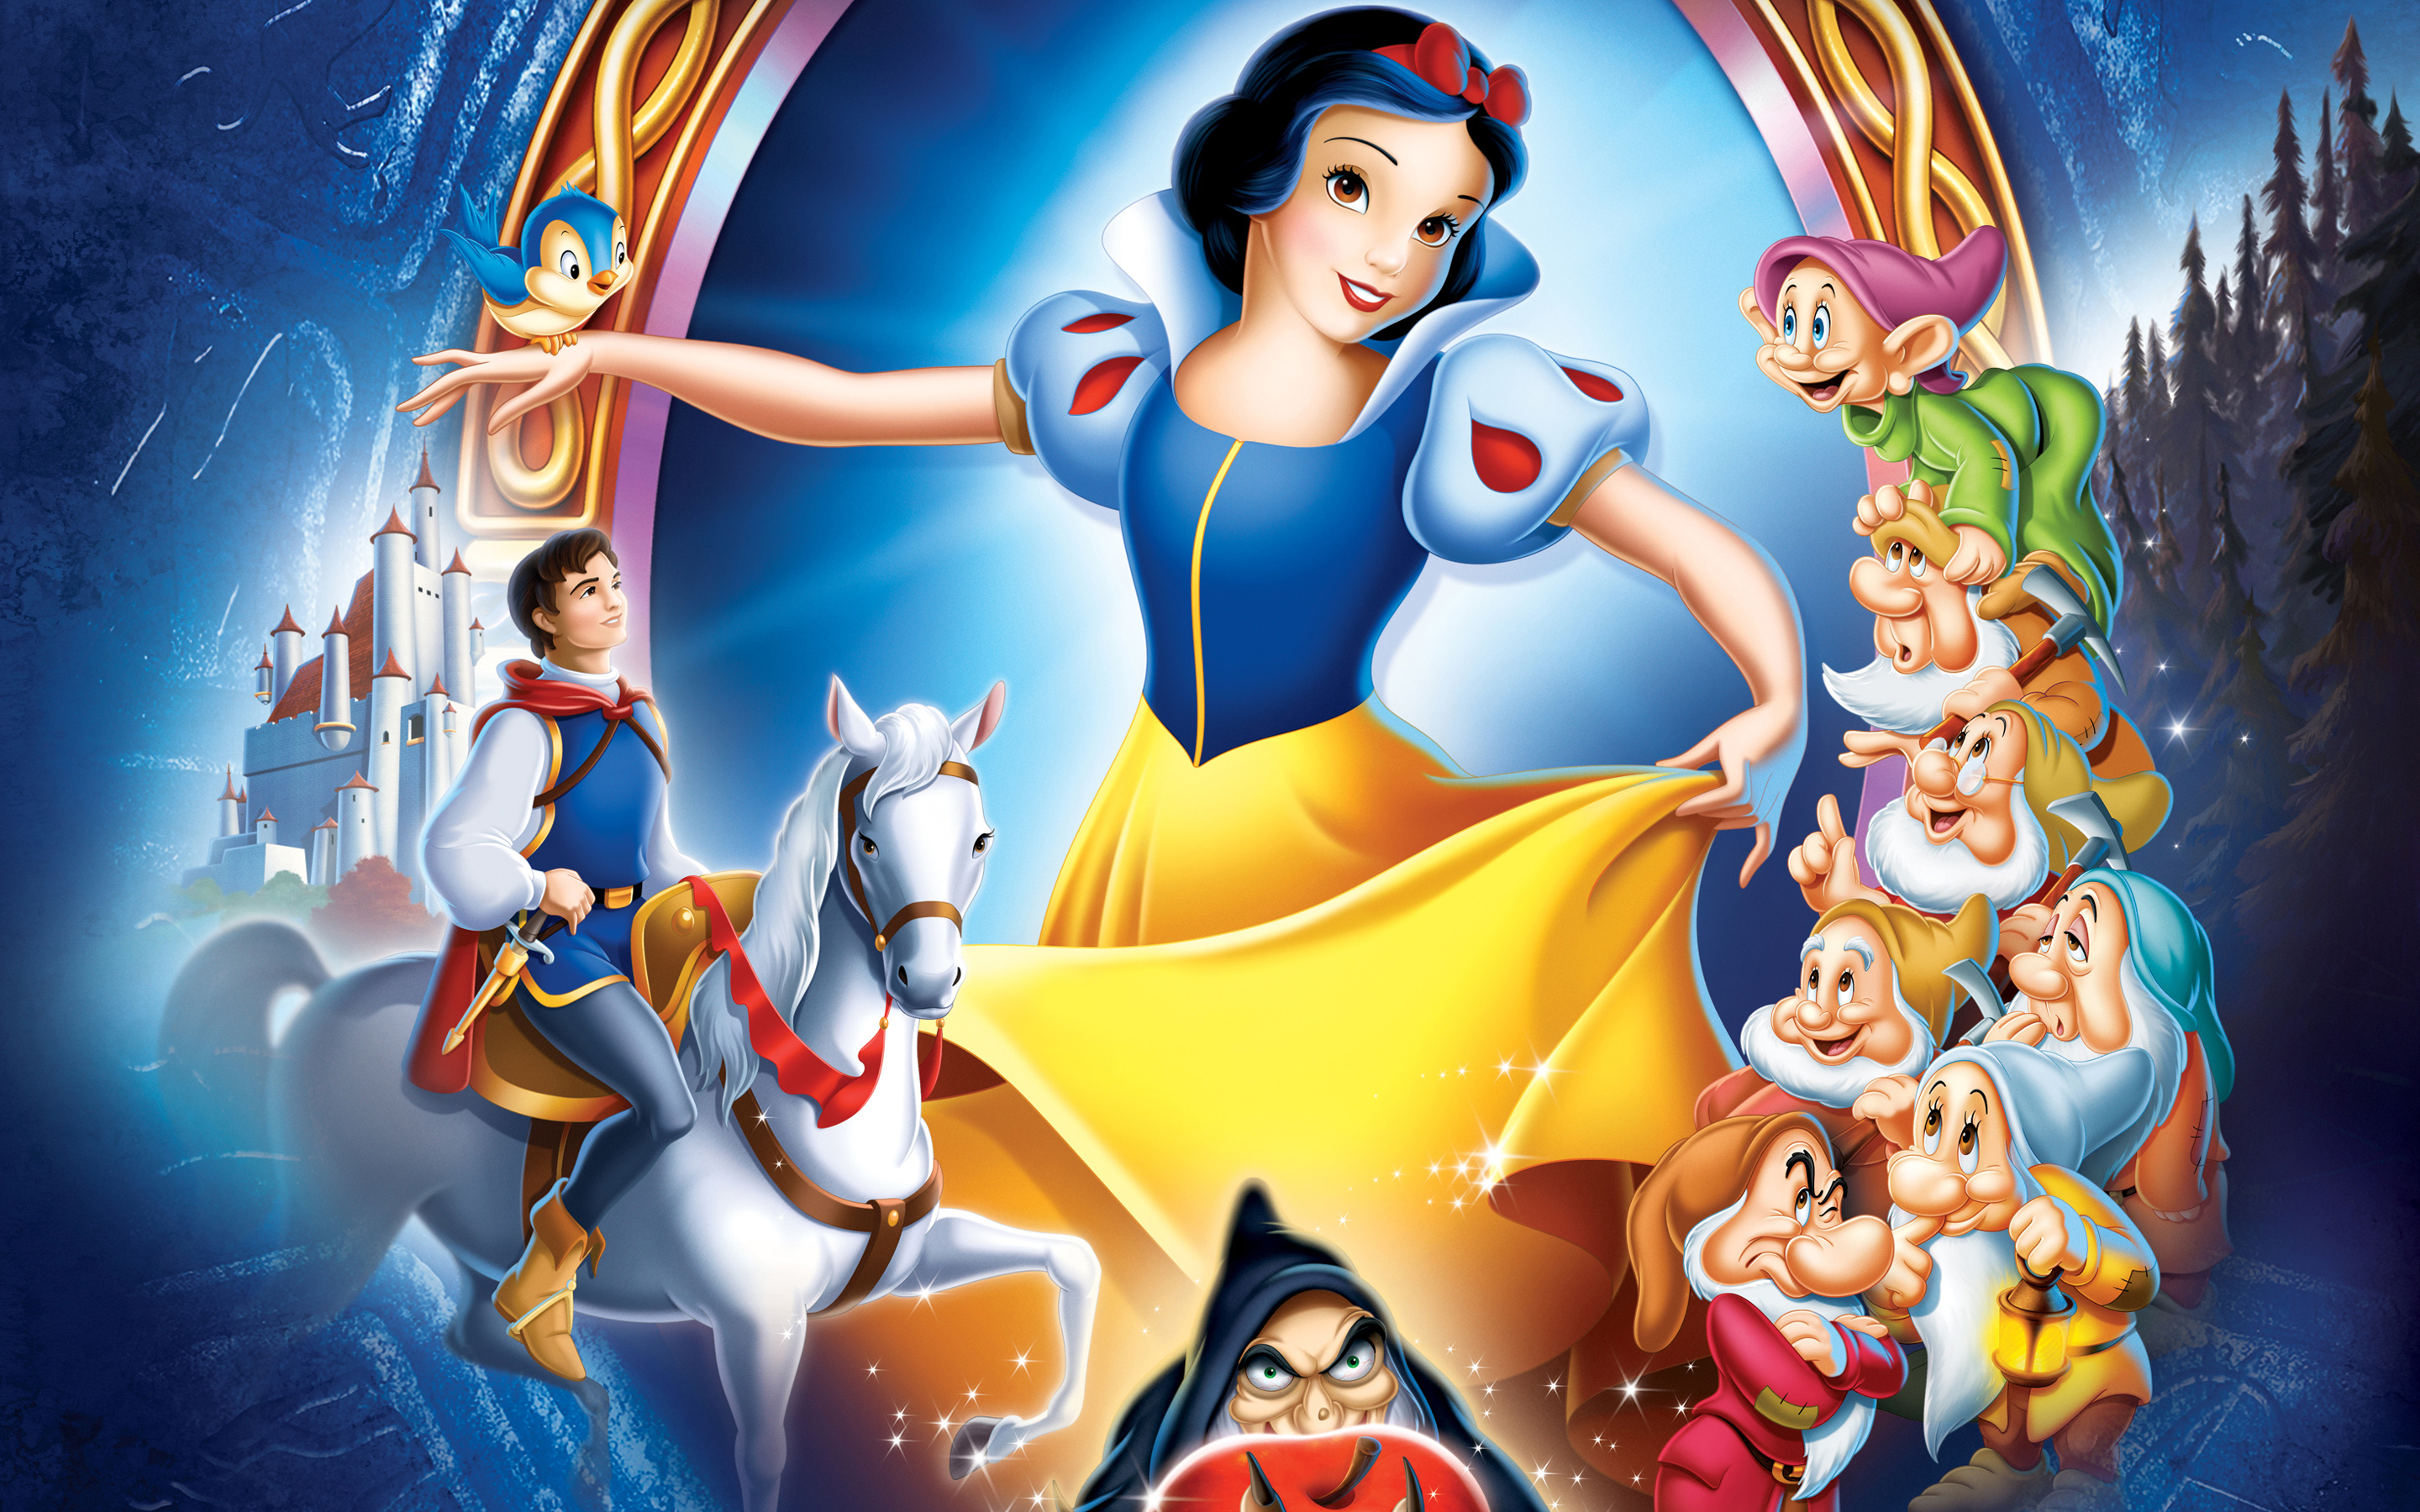 Disney Enchanted Wallpapers HD Wallpapers 2880x1800